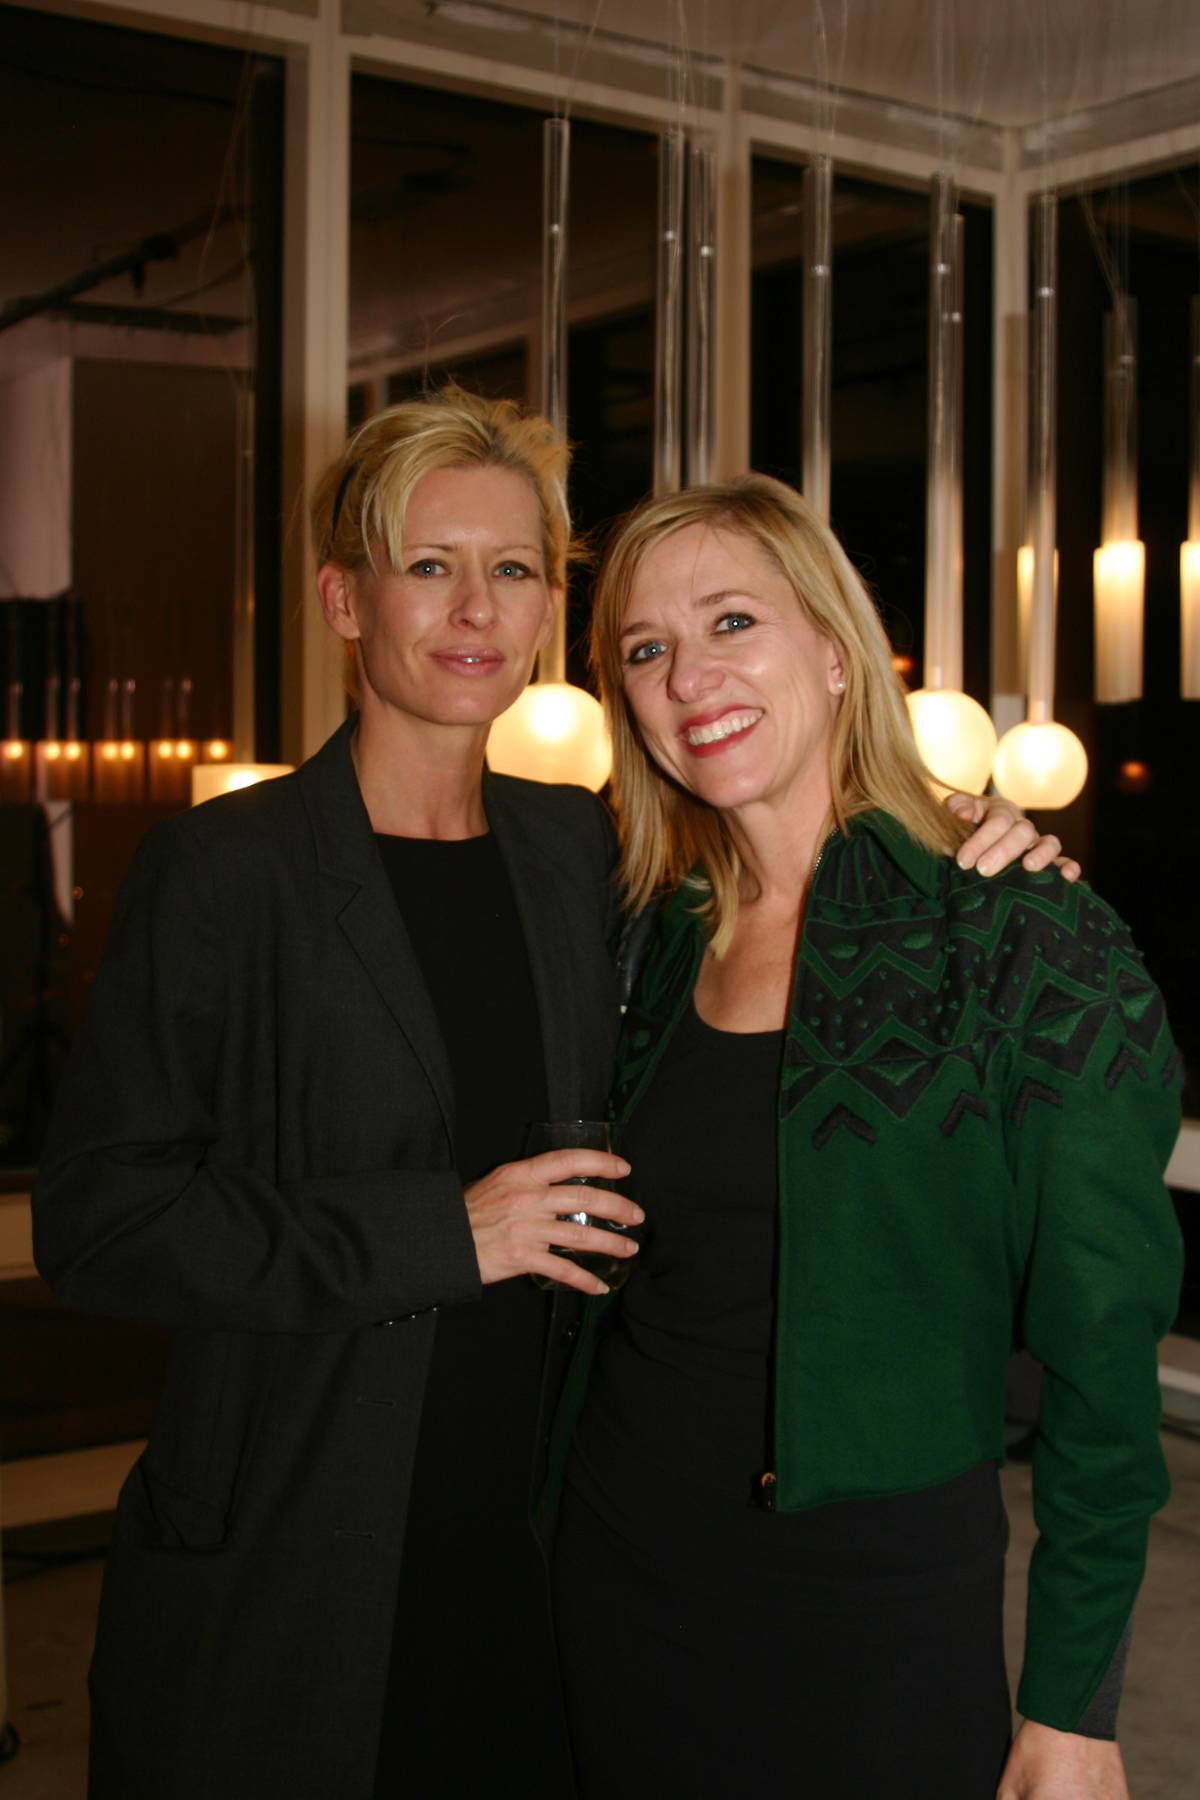 Designer Larissa Sand and Dwell Founder Lara Deam